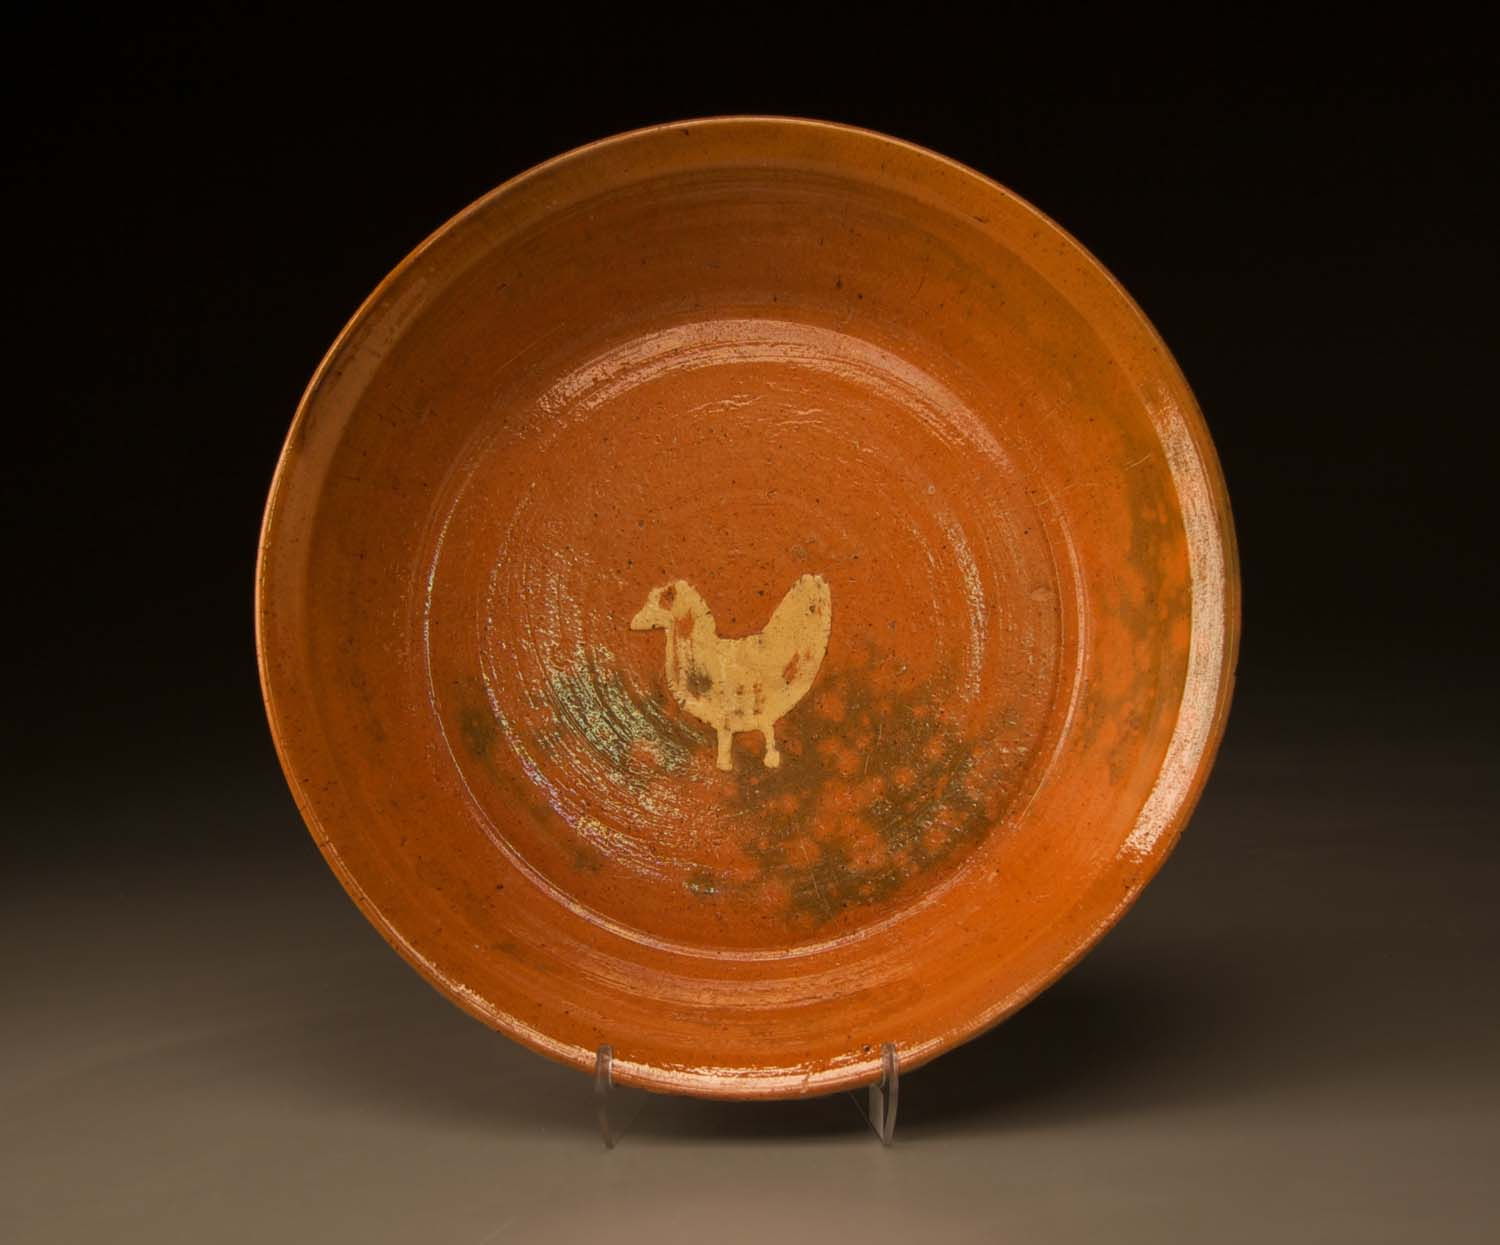 Chicken Plate in Orange Glaze by Ben Owen Sr. Decorated by Jacques Busbee Inside View 1940s.jpg